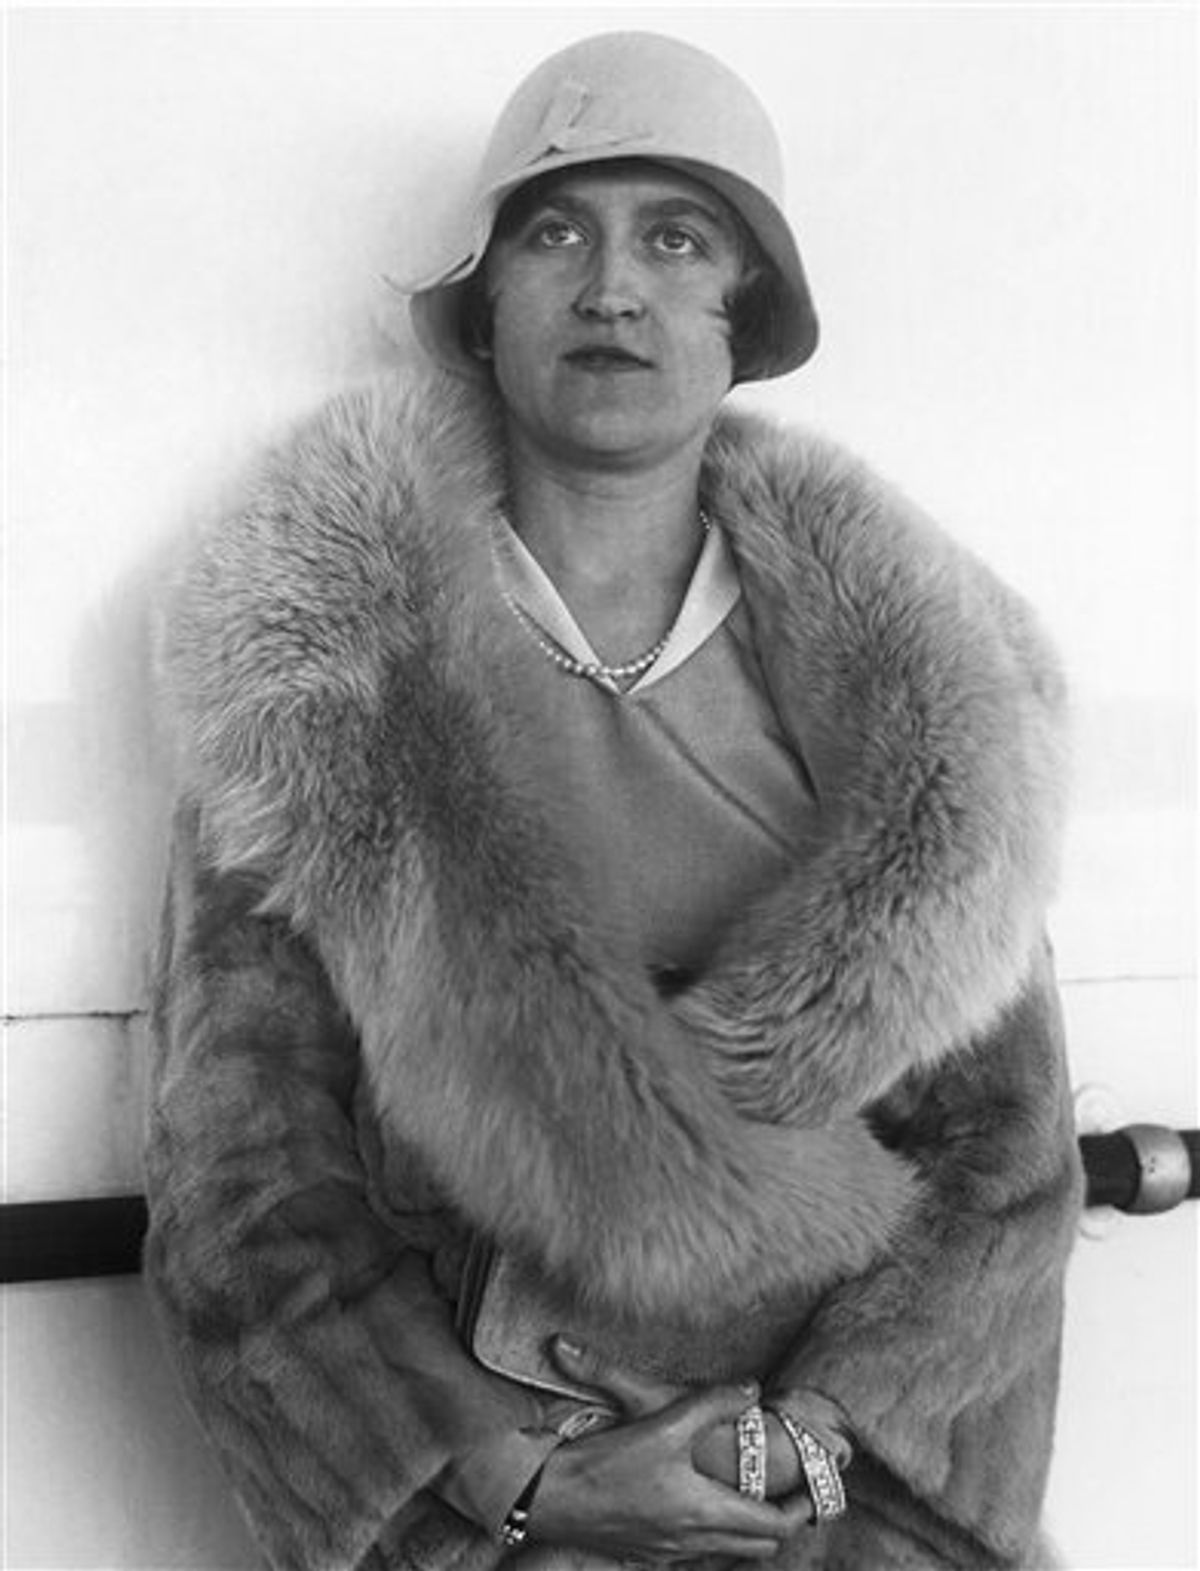 FILE - This Aug. 11, 1930 file photo shows Mrs. Huguette Clark Gower, daughter of the late Sen. William A. Clark of Montana, a copper magnate, in Reno, Nev. Clark, the 104-year-old heiress to a Montana copper fortune who once lived in the largest apartment on Fifth Avenue, died Tuesday, May 24, 2011, at a Manhattan hospital even as an investigation continues into how her millions were handled. (AP Photo, File) (AP)